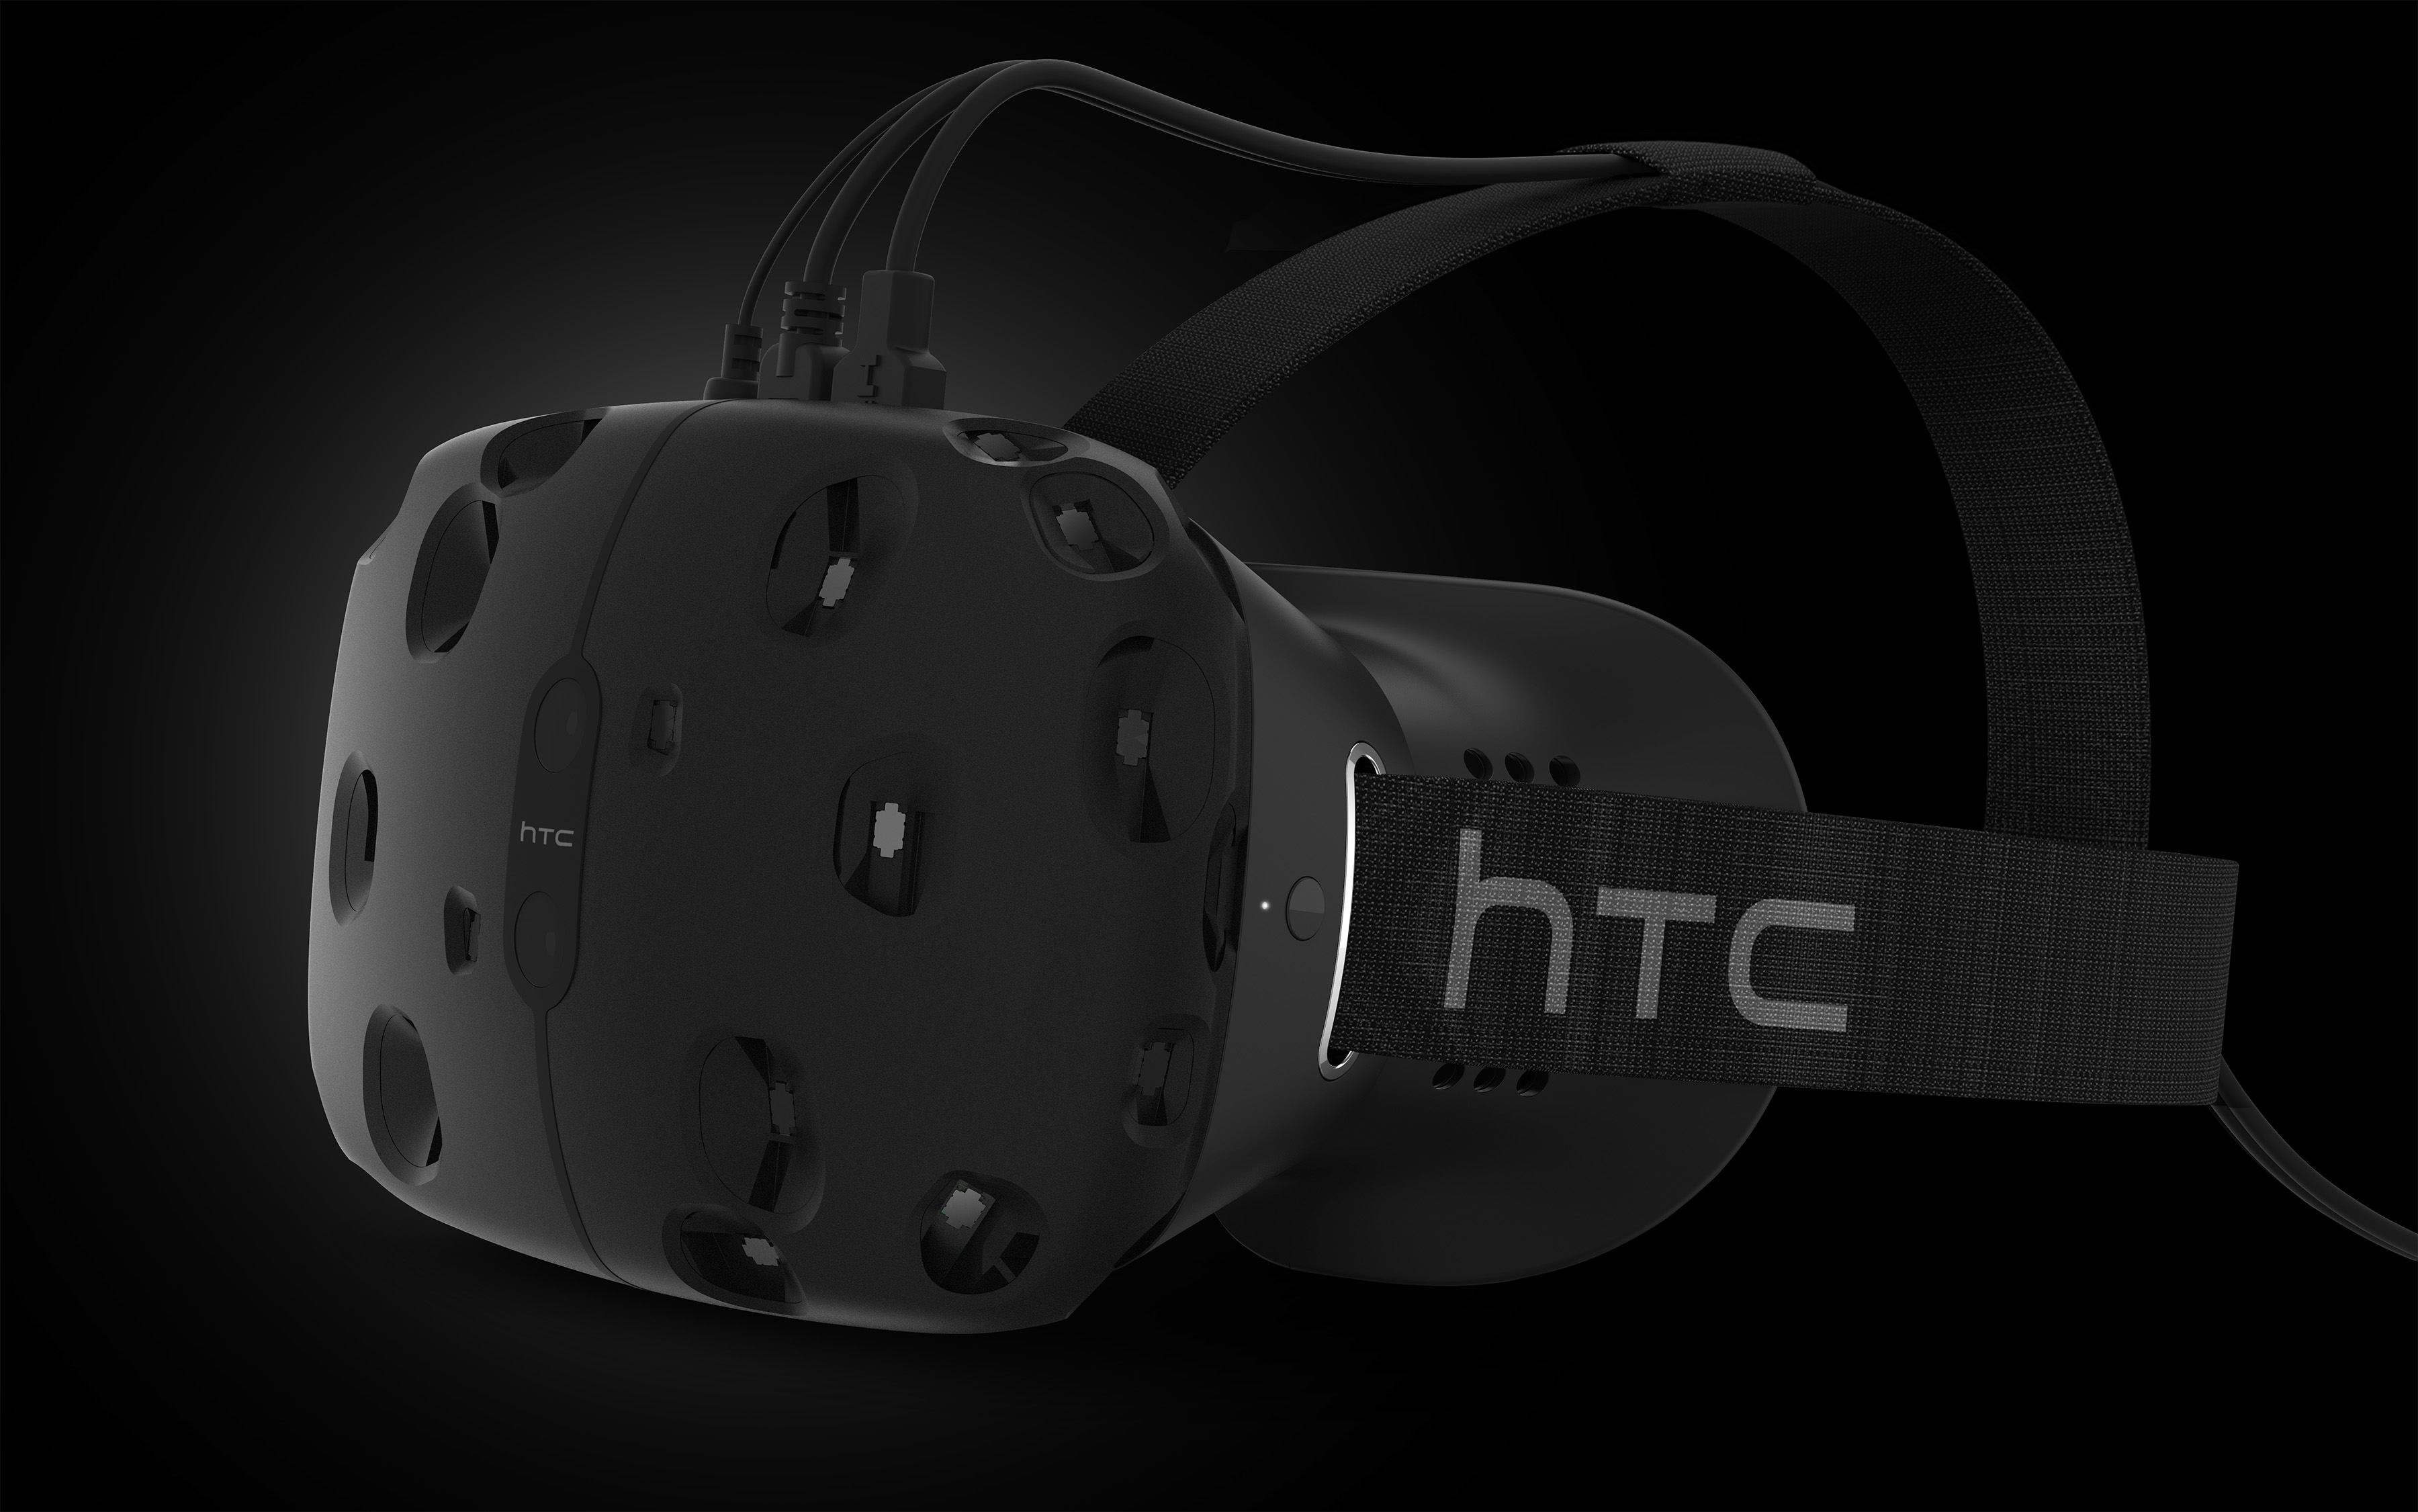 Vive VR from Valve and HTC to Cost $799, Launches in April